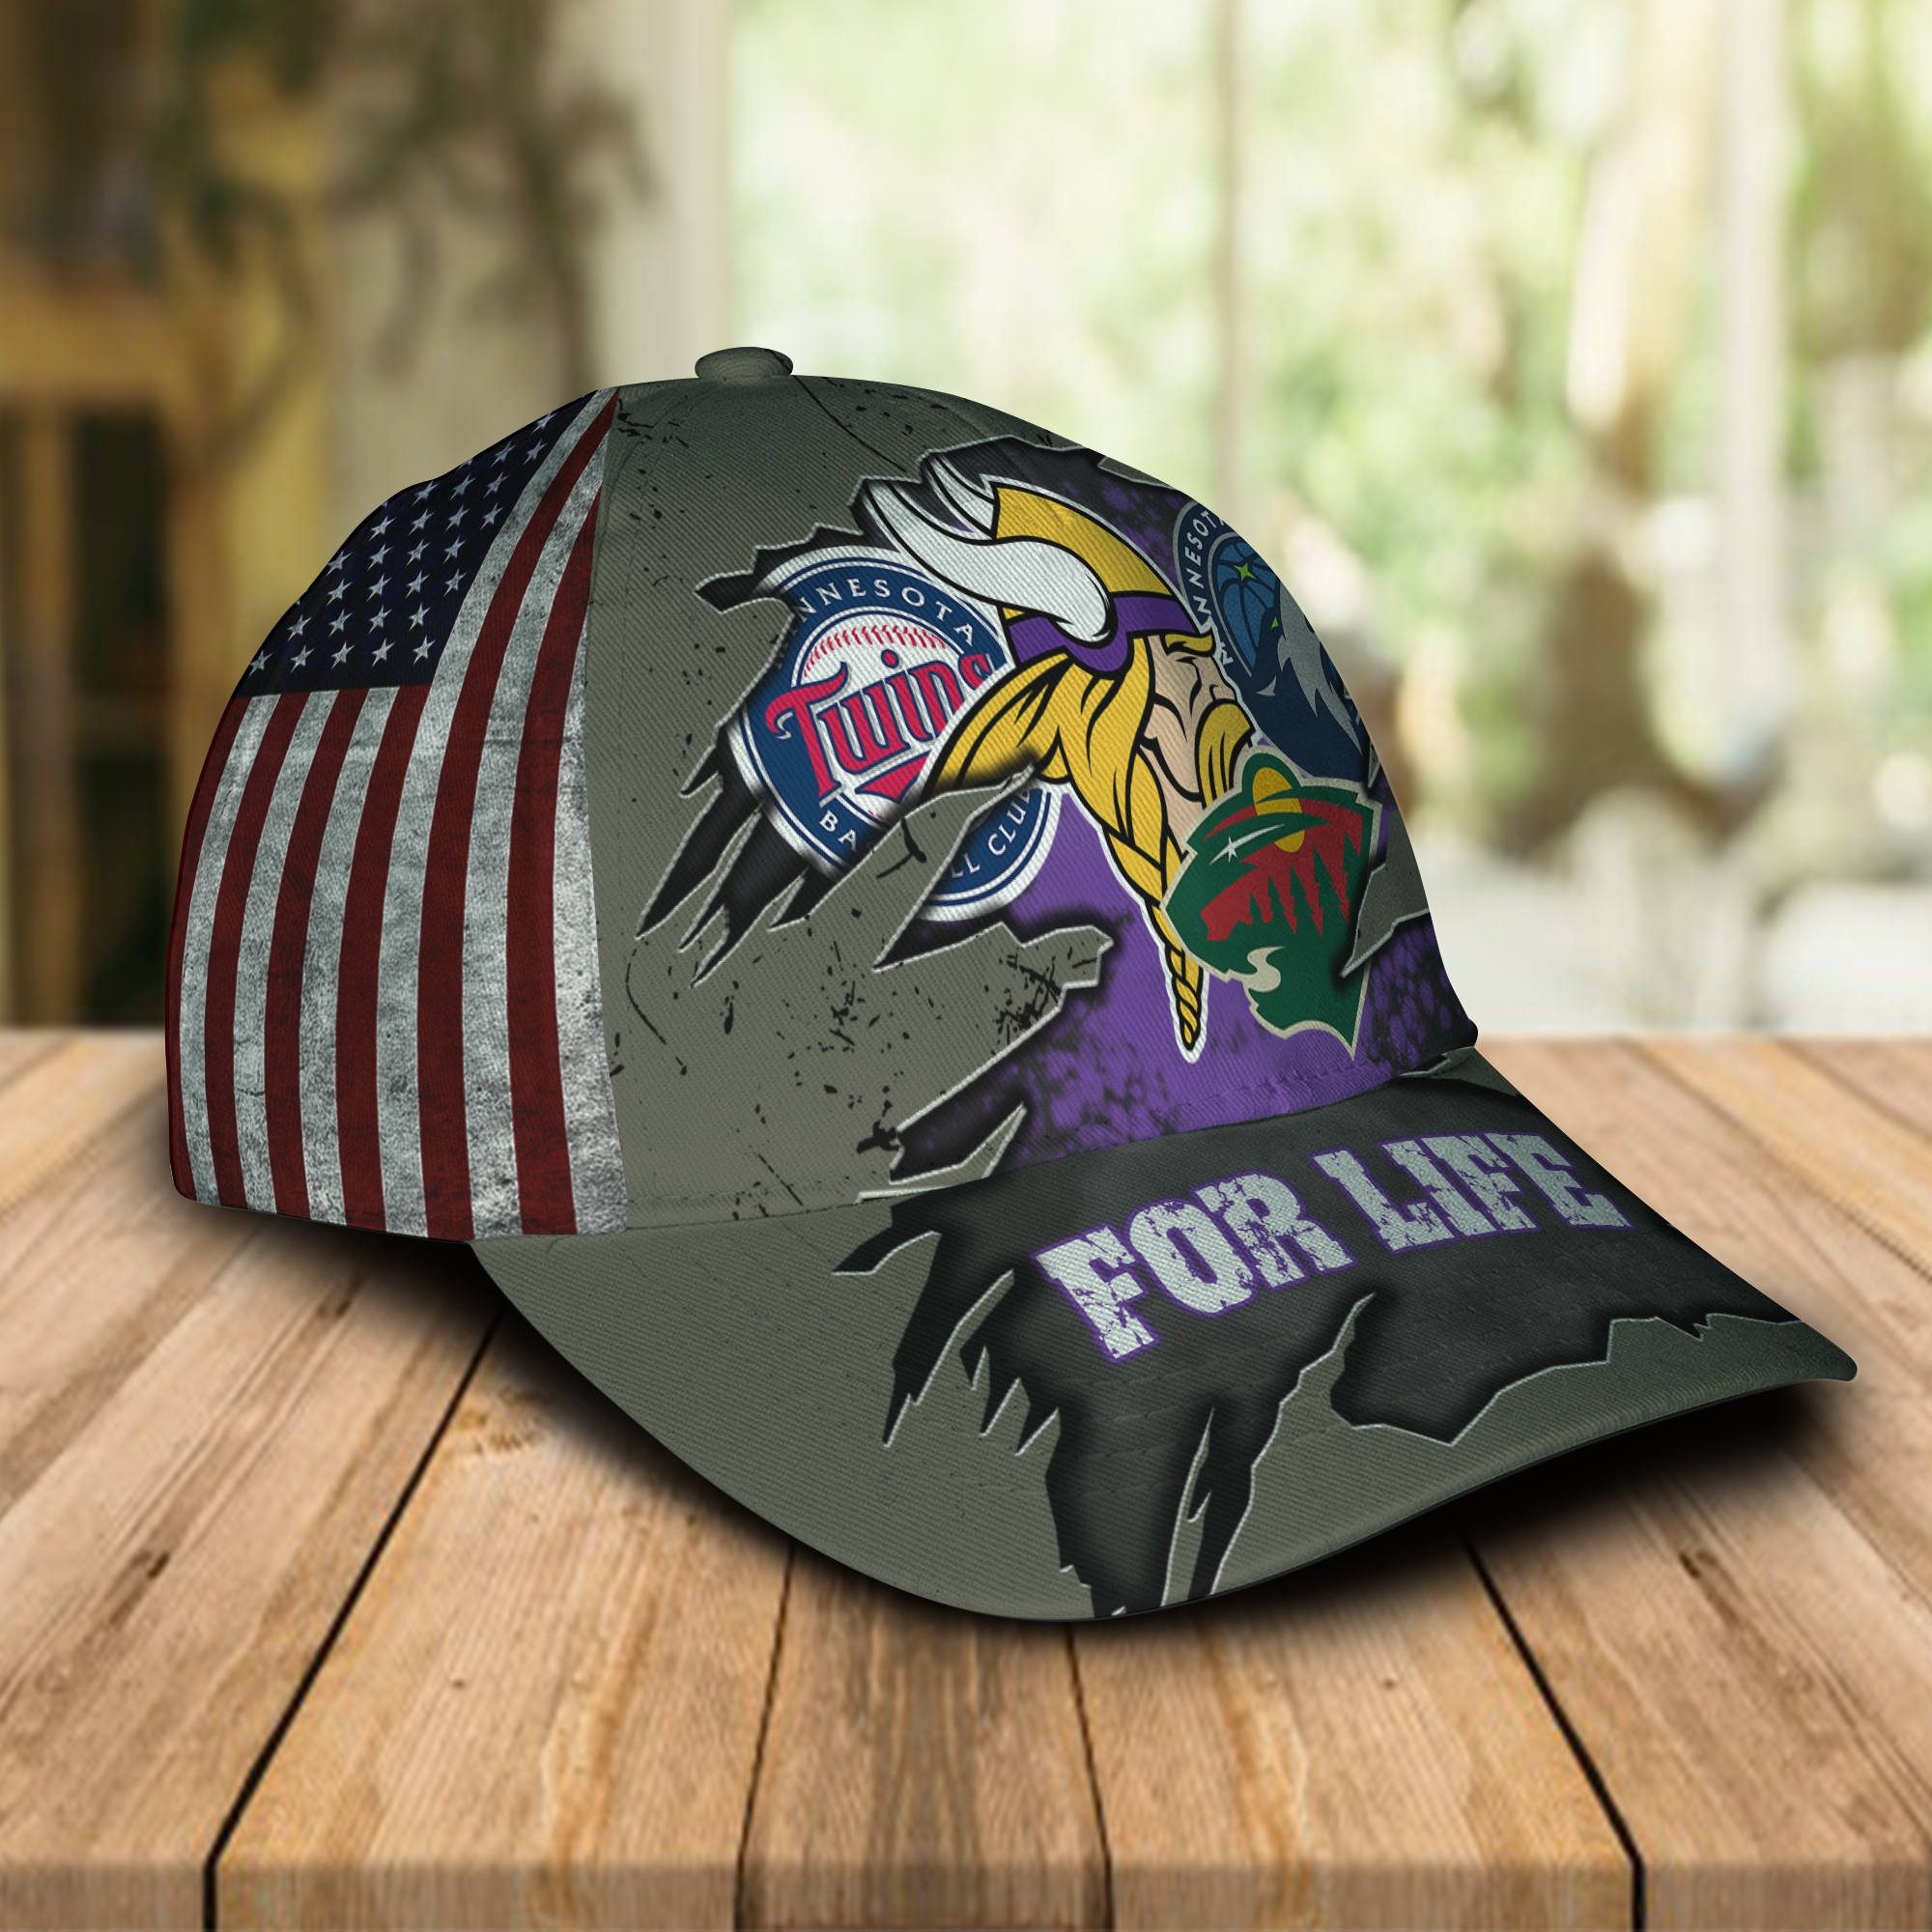 Minnesota Vikings With Twins, Timberwolves, Wild For Life Hat Cap -1